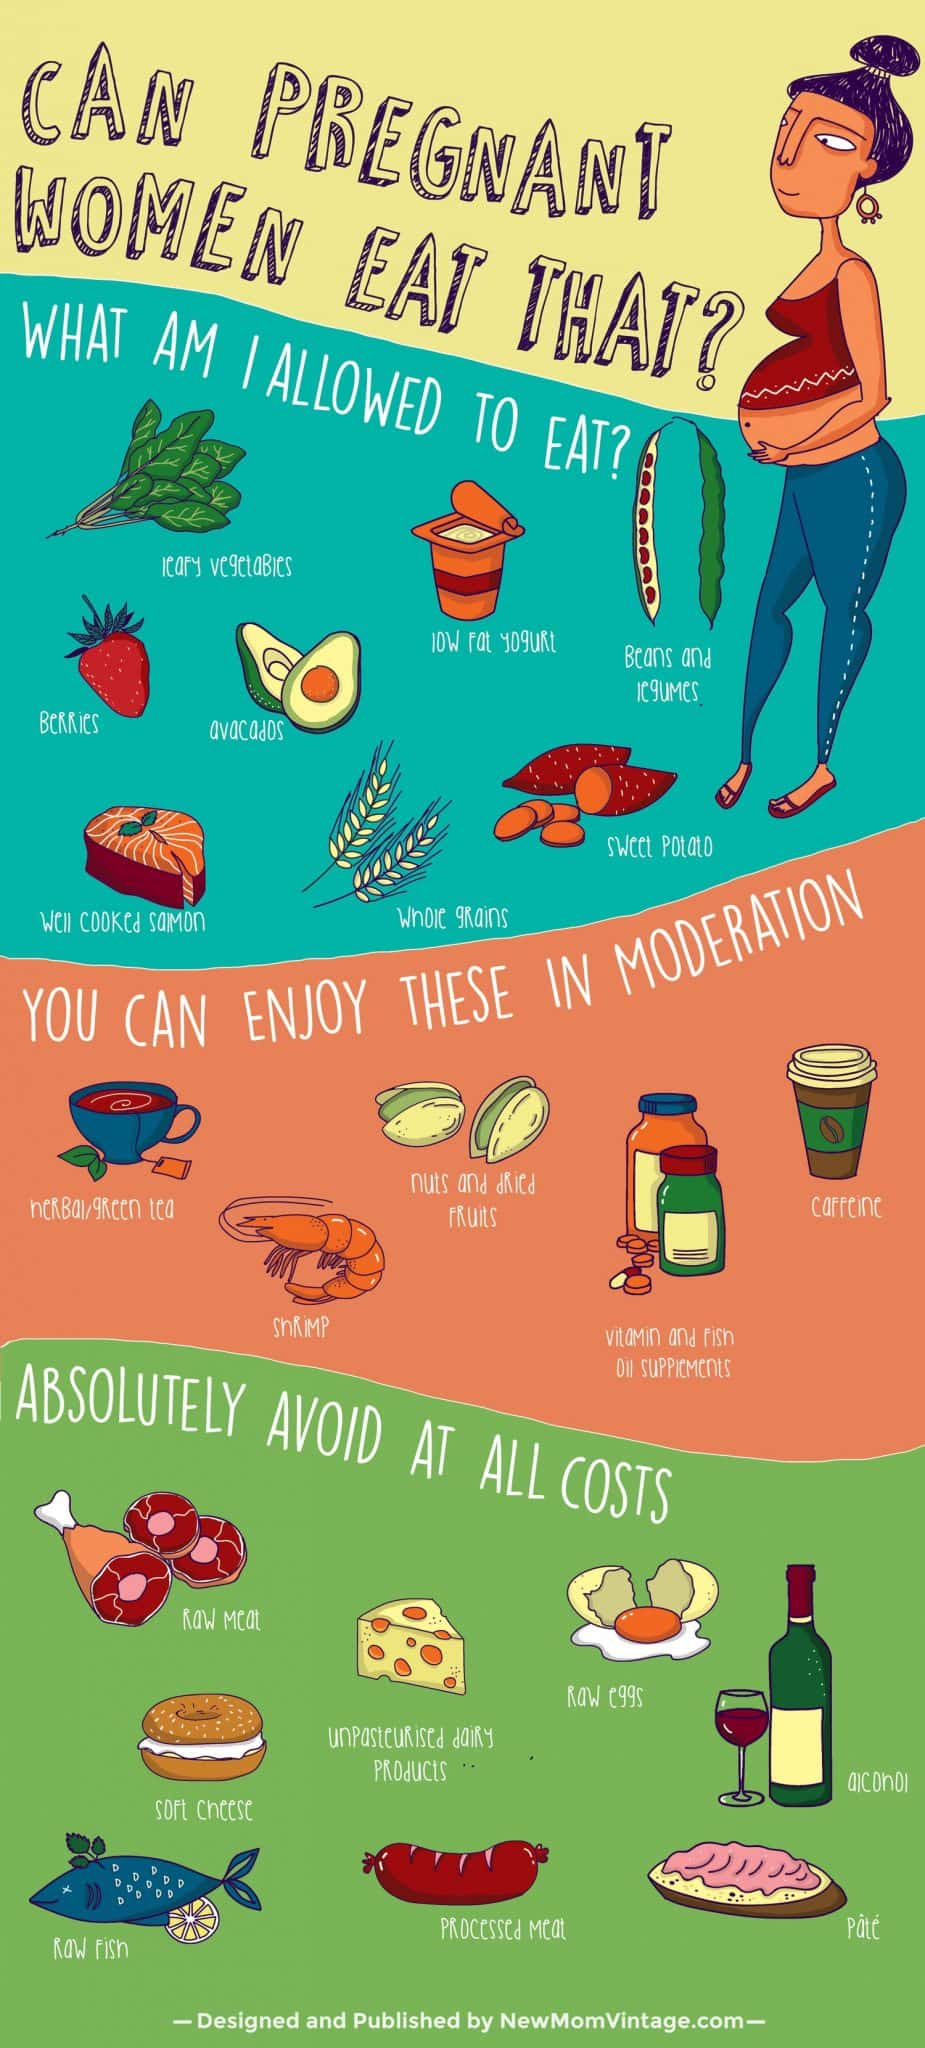 Can Pregnant Women Eat That? Infographic sharing valuable information on what is safe to eat as a pregnant mom-to-be.